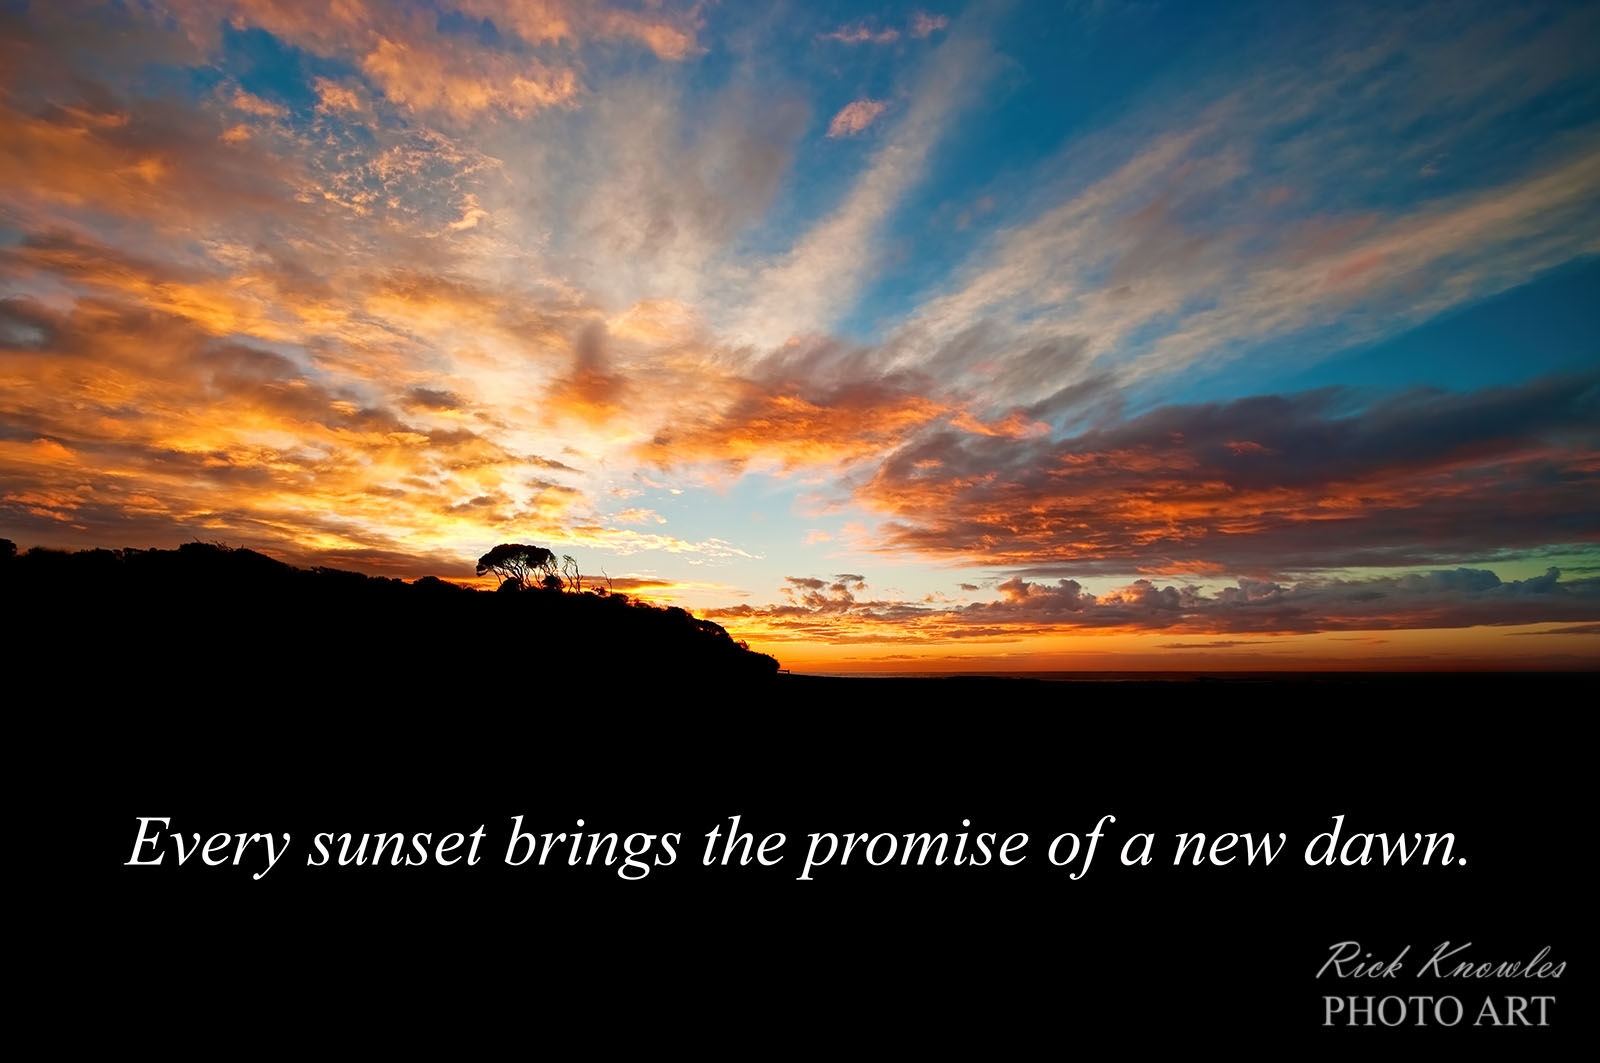 The Promise of a New Dawn